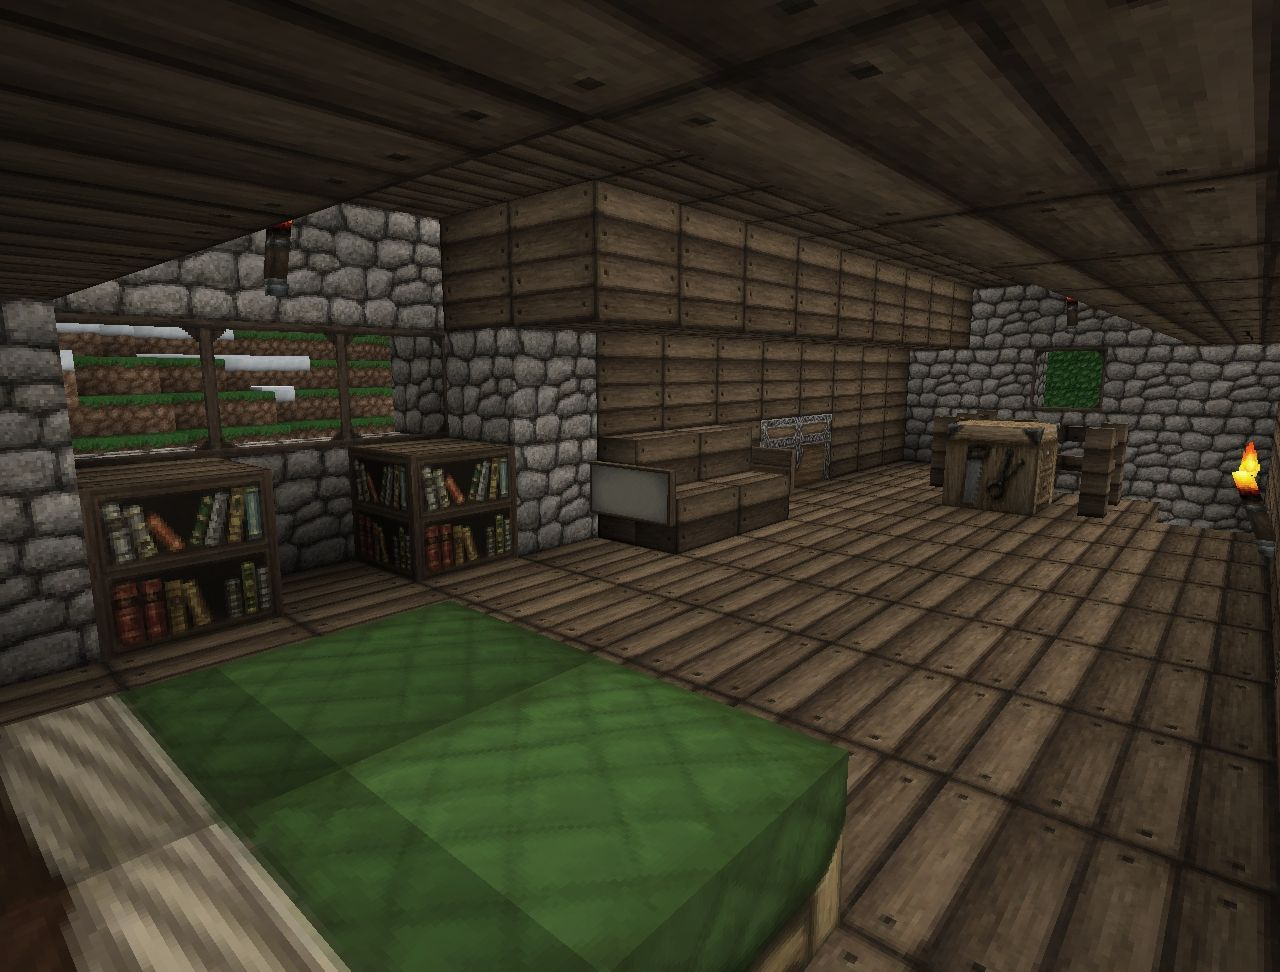 Woodworking central project workbench mod for Minecraft carpentry bench